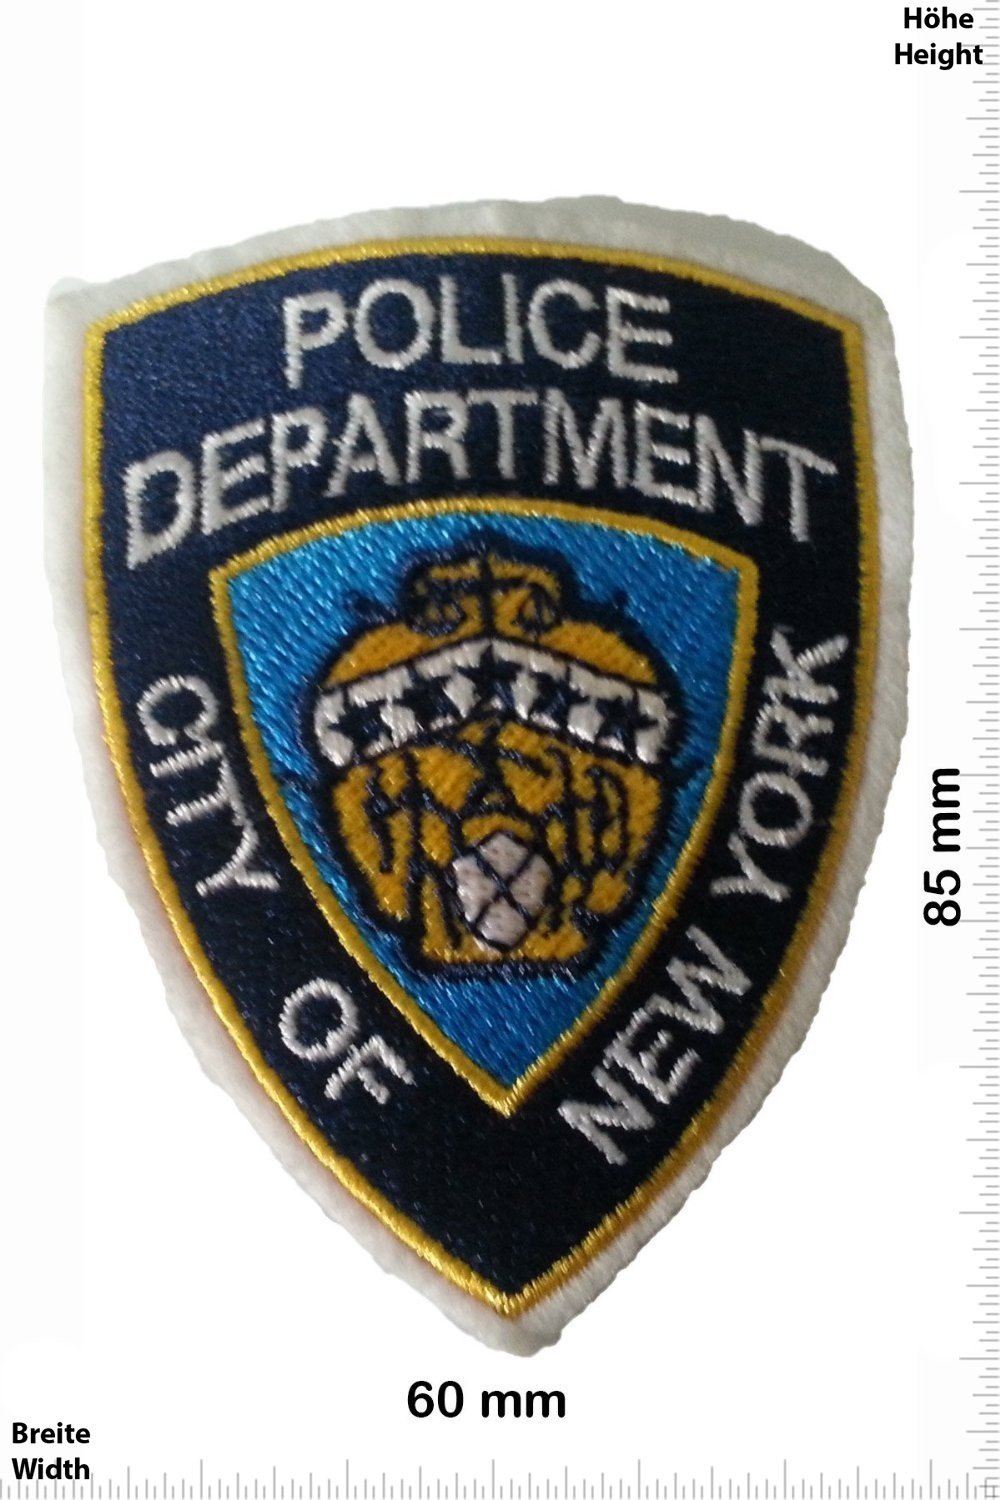 Police New York POLICE OFFICER Patches Applique embroidery /Écusson brod/é Costume Cadeau- Give Away Police and Law Patches Vest Iron on Patch